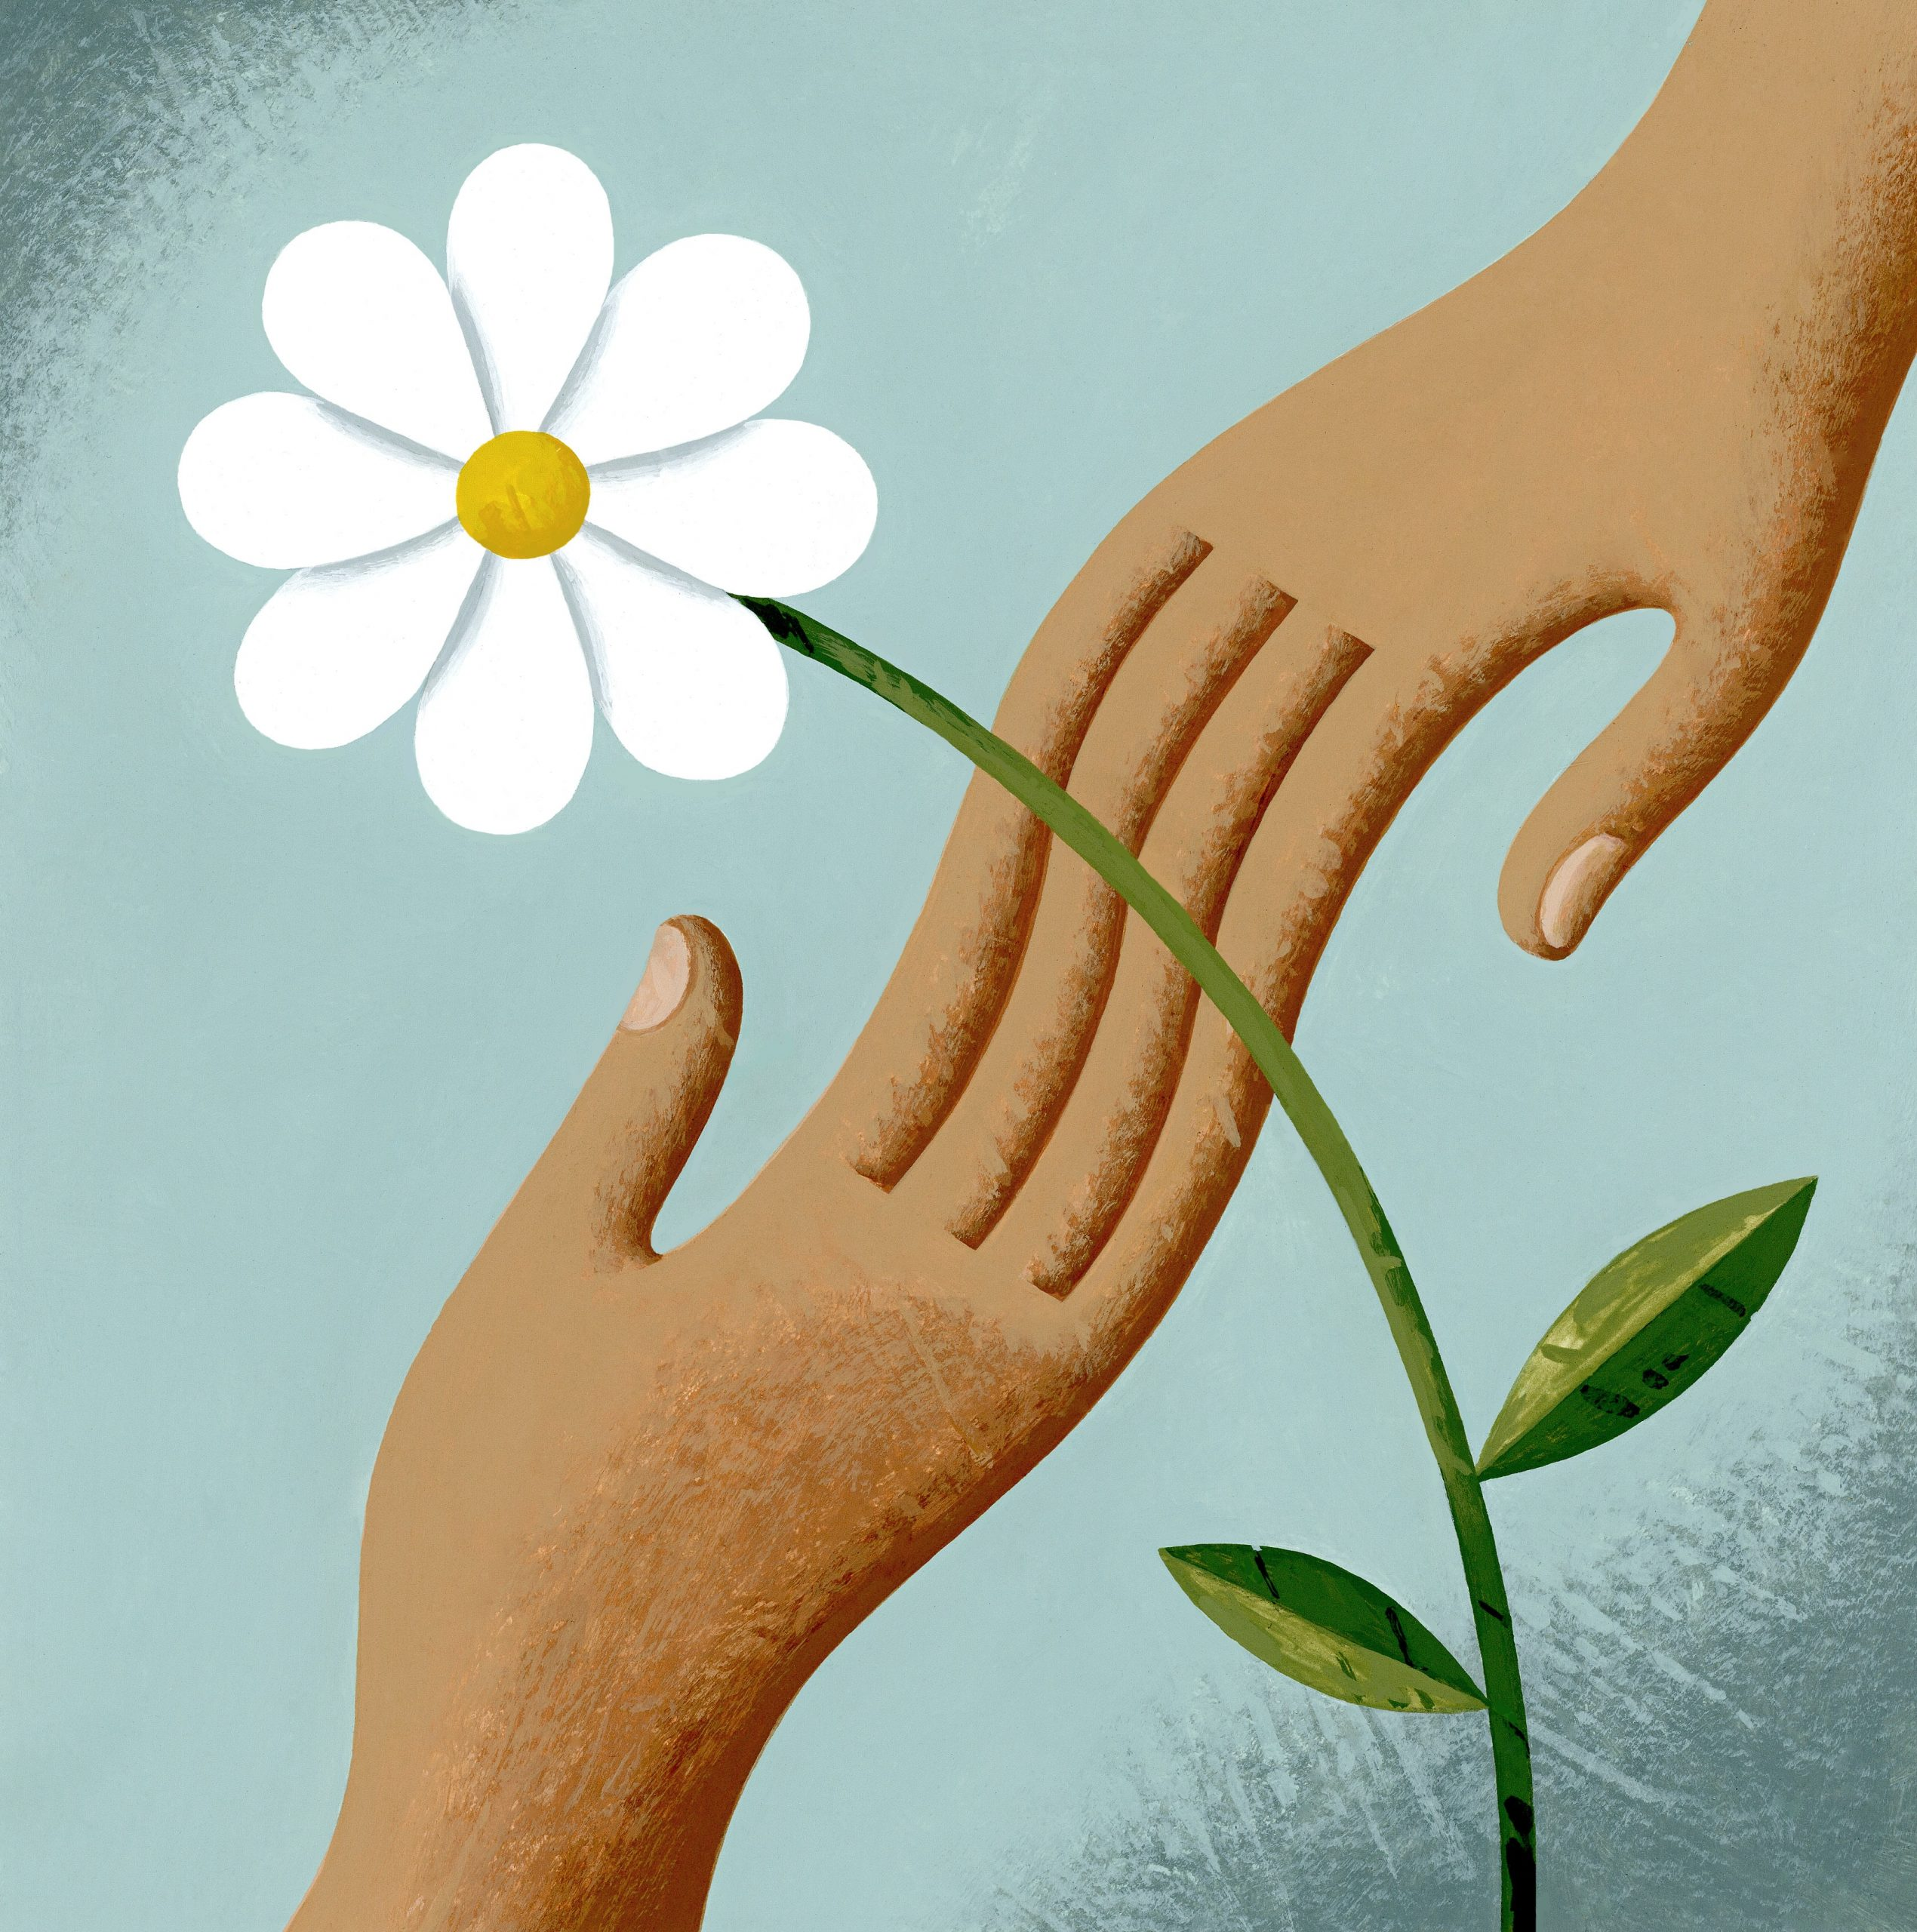 The image show and illustration of two hands joined together at the fingertips forming an abstract image. A single white flower runs through the point where the two hands meet. Pale blue background.